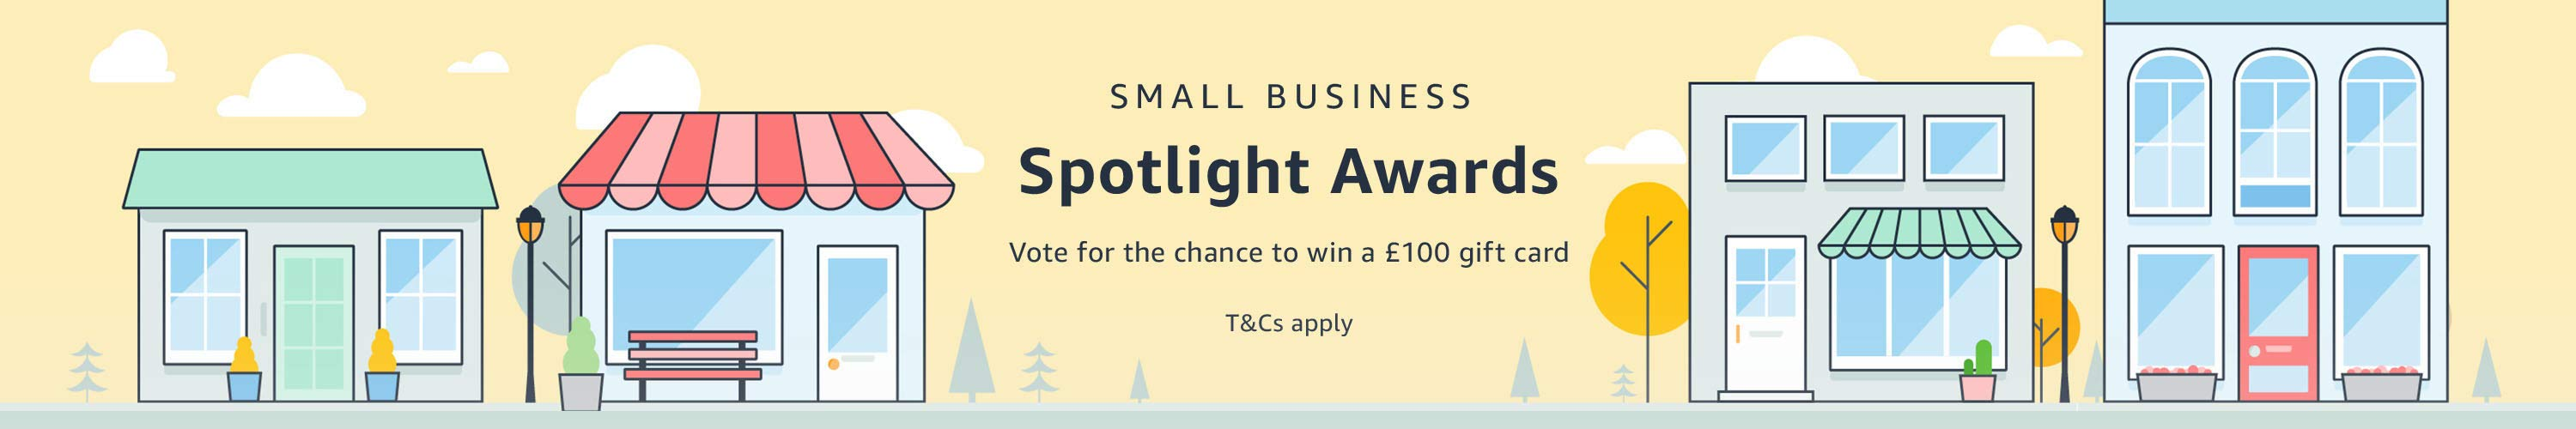 Amazon Small Business Awards